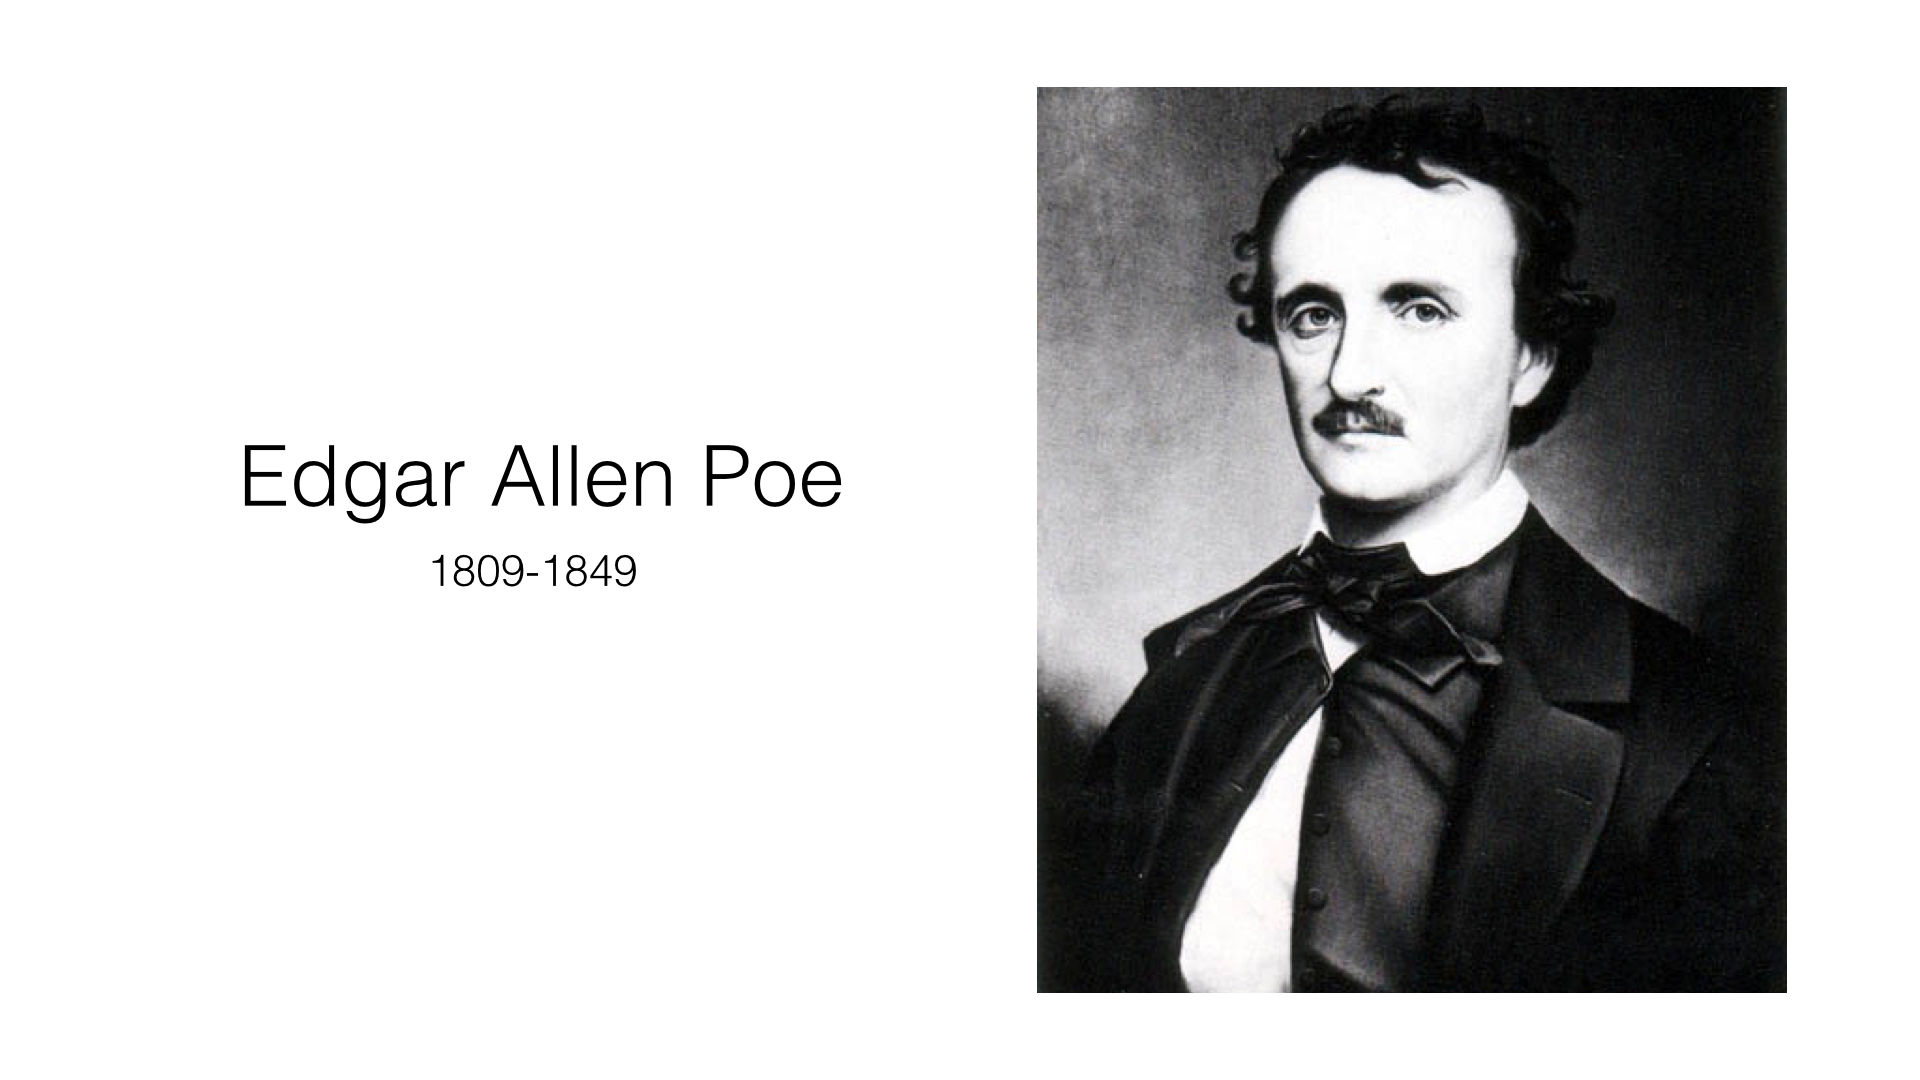 depression psych yogi edgar allen poe was known to suffer from depression